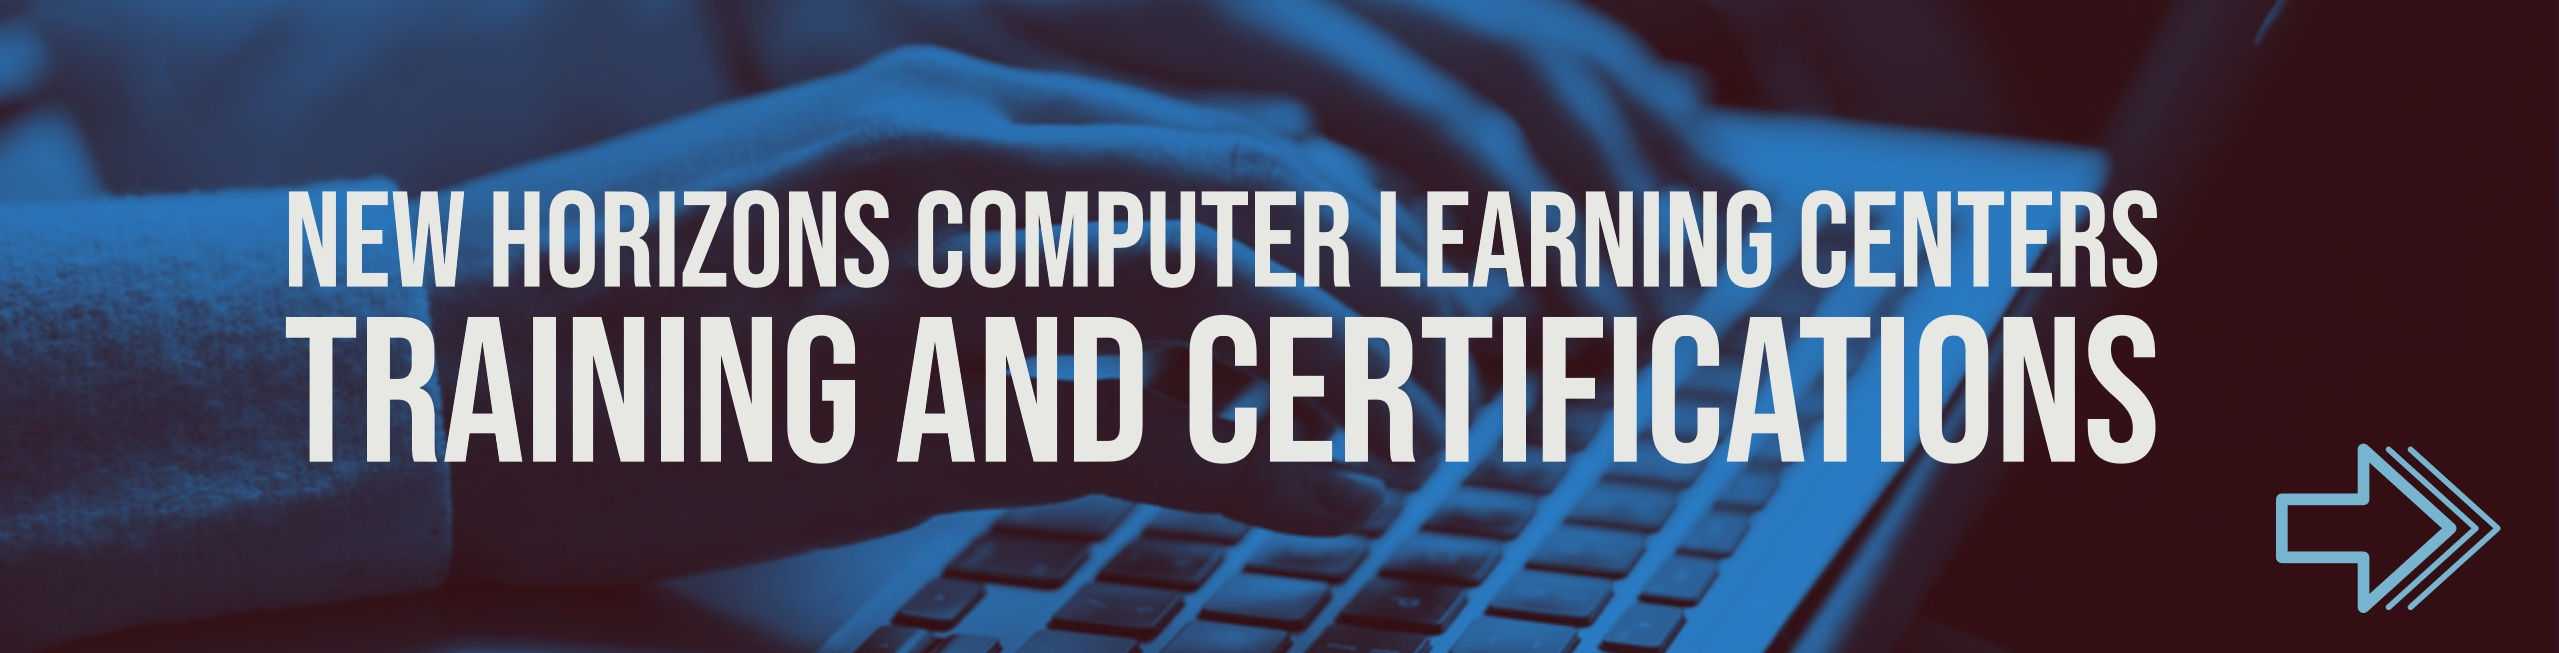 New Horizons Computer Learning Centers  Certifications